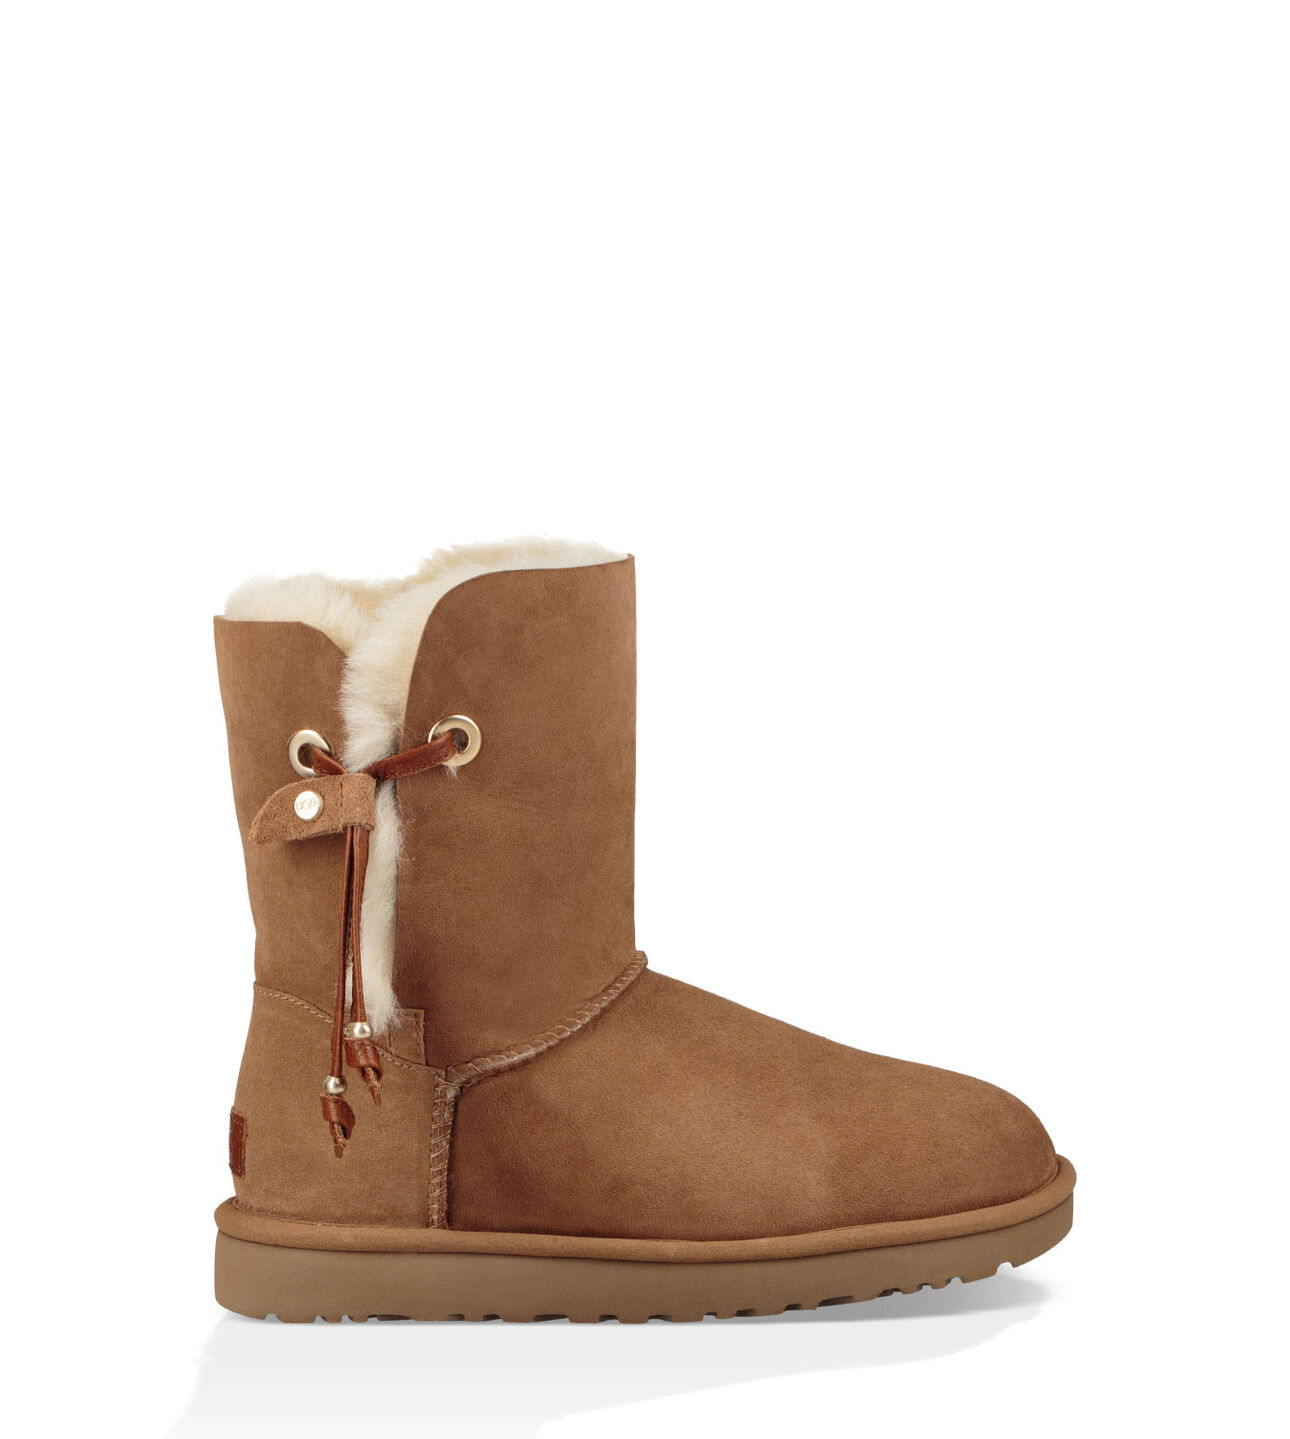 premium outlet ugg boots